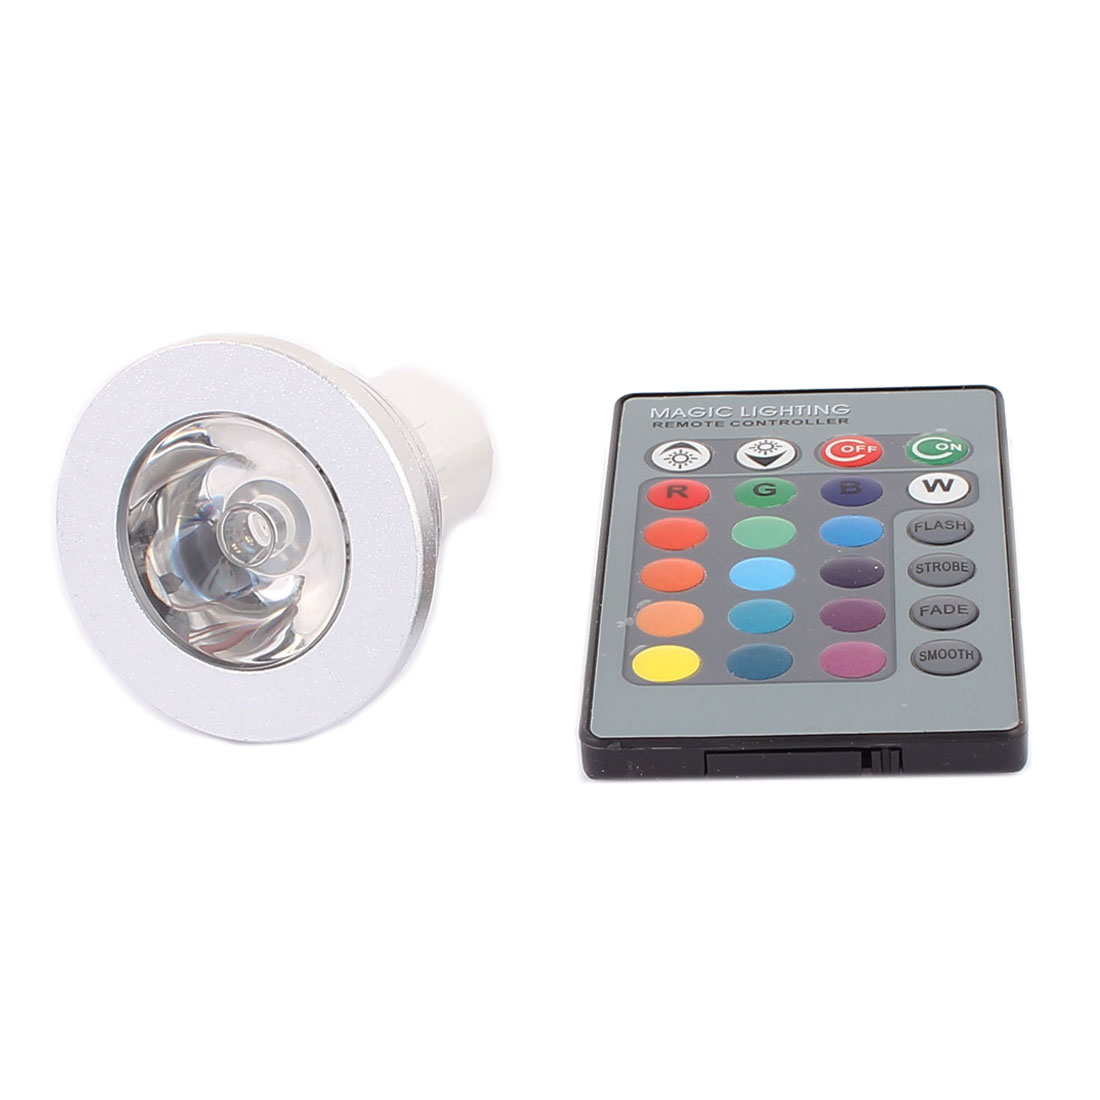 GU10 Adapter Decor Spotlight Light RGB LED Lamp Bulb 3W AC 85-265V w Remote Controller